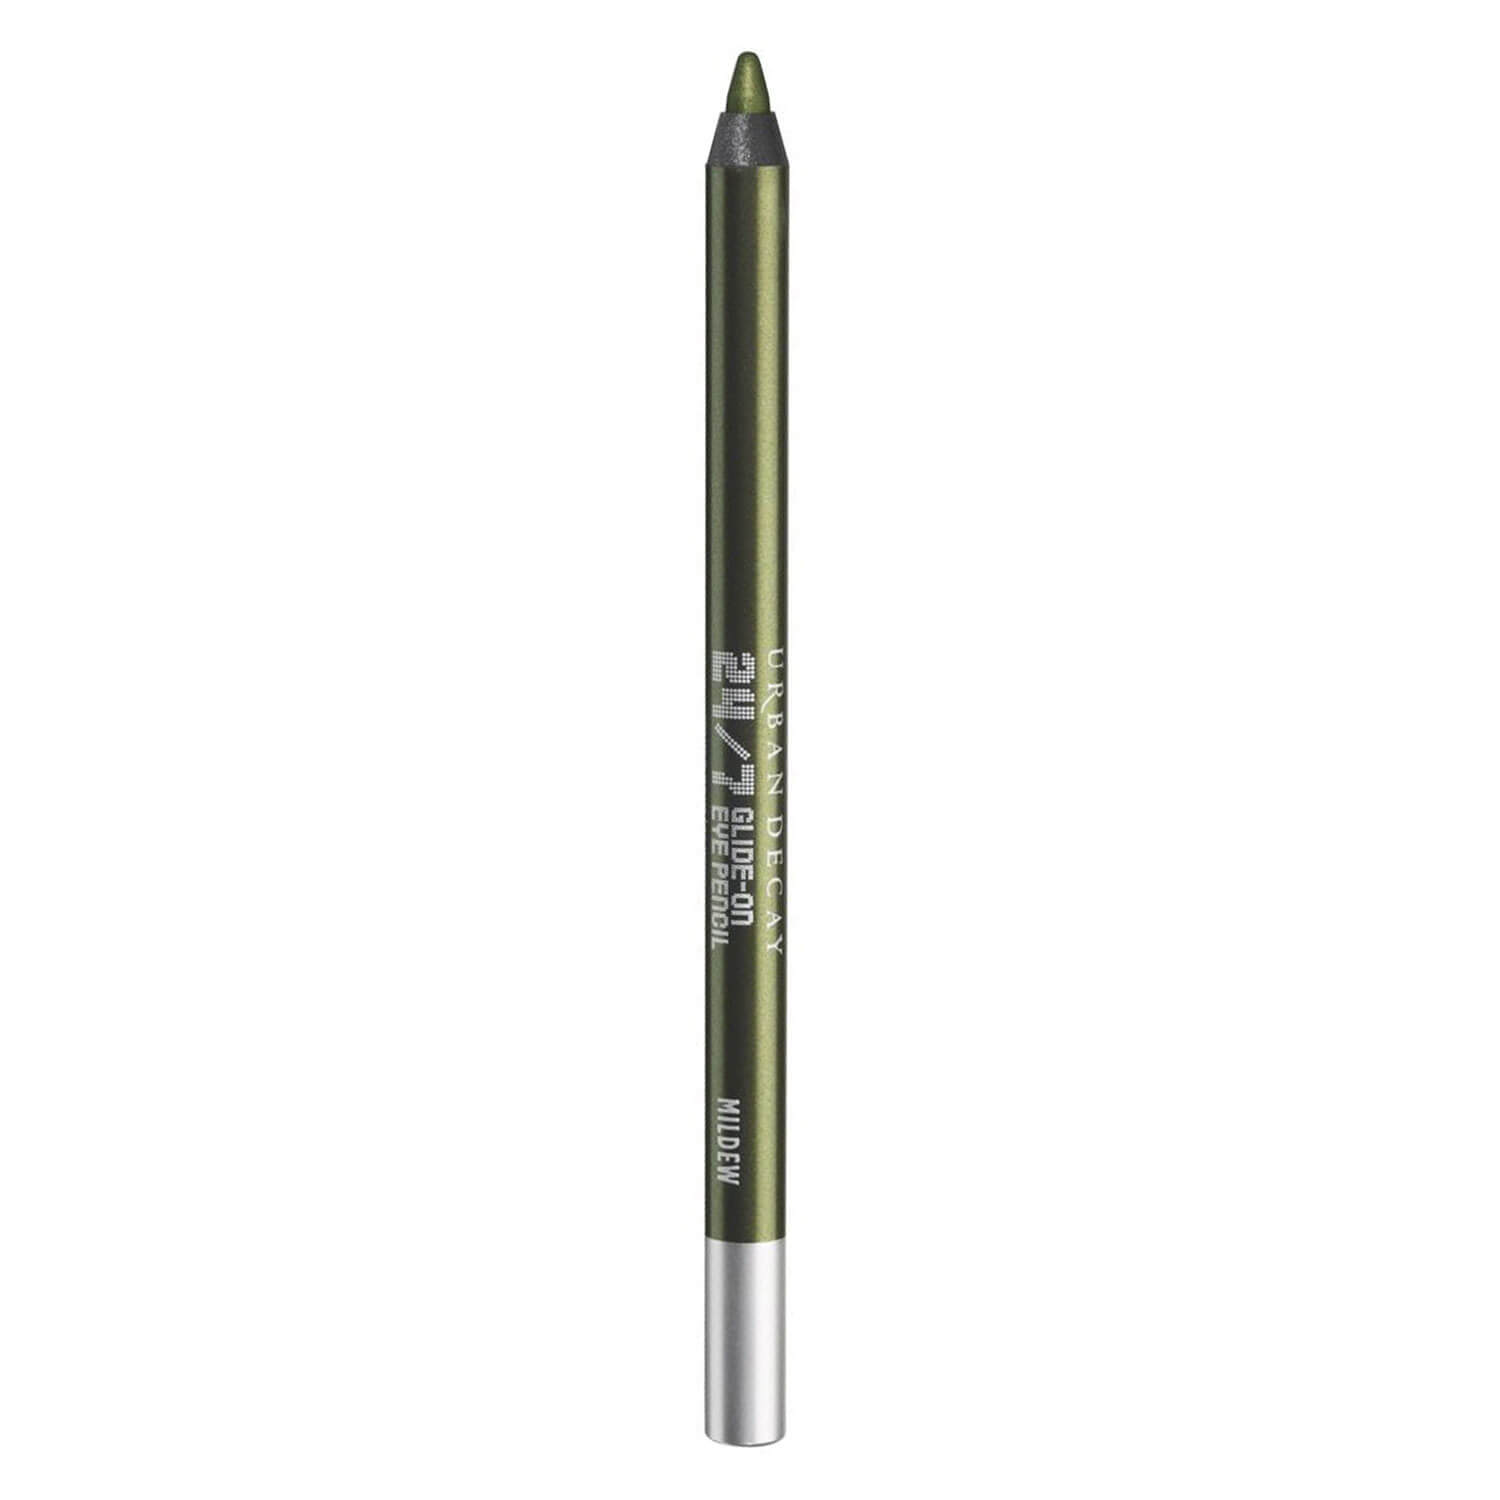 24/7 Glide-On - Eye Pencil Mildew